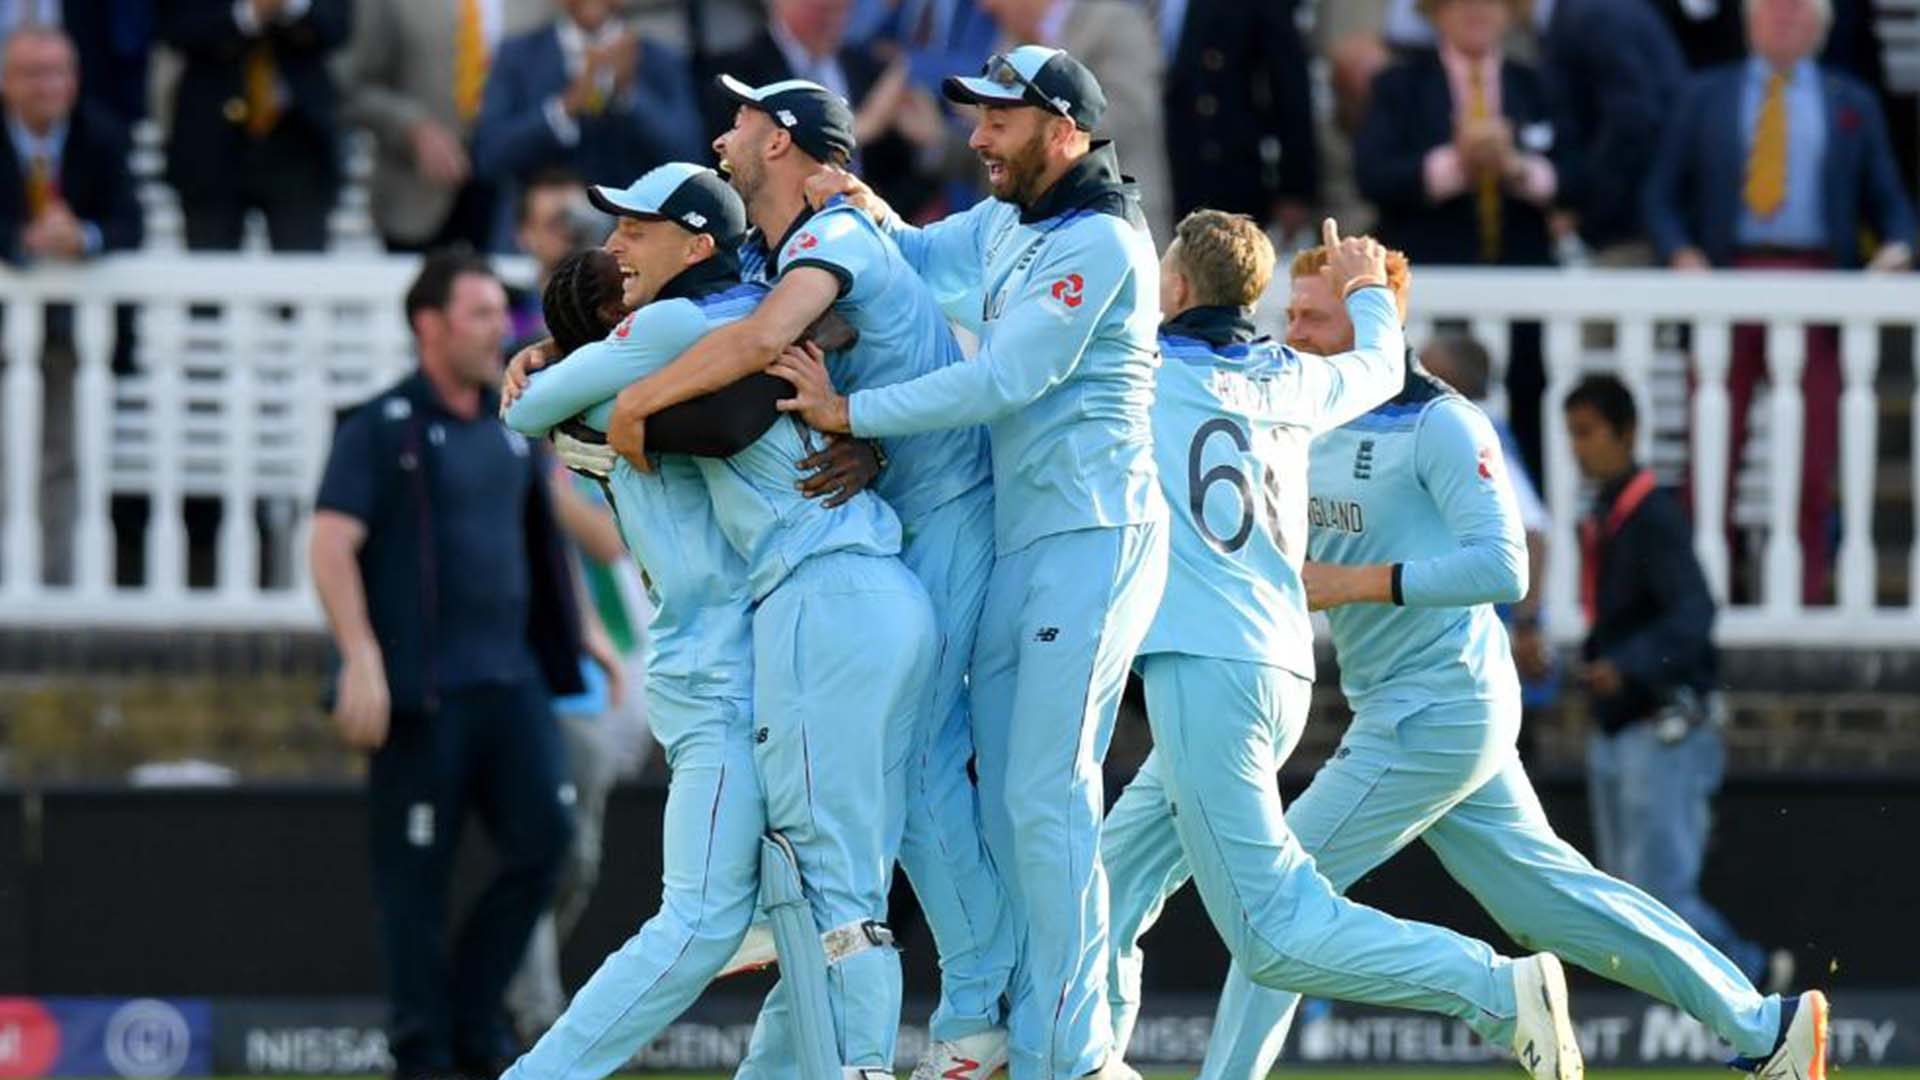 England win World Cup 2019 despite Super Over tie